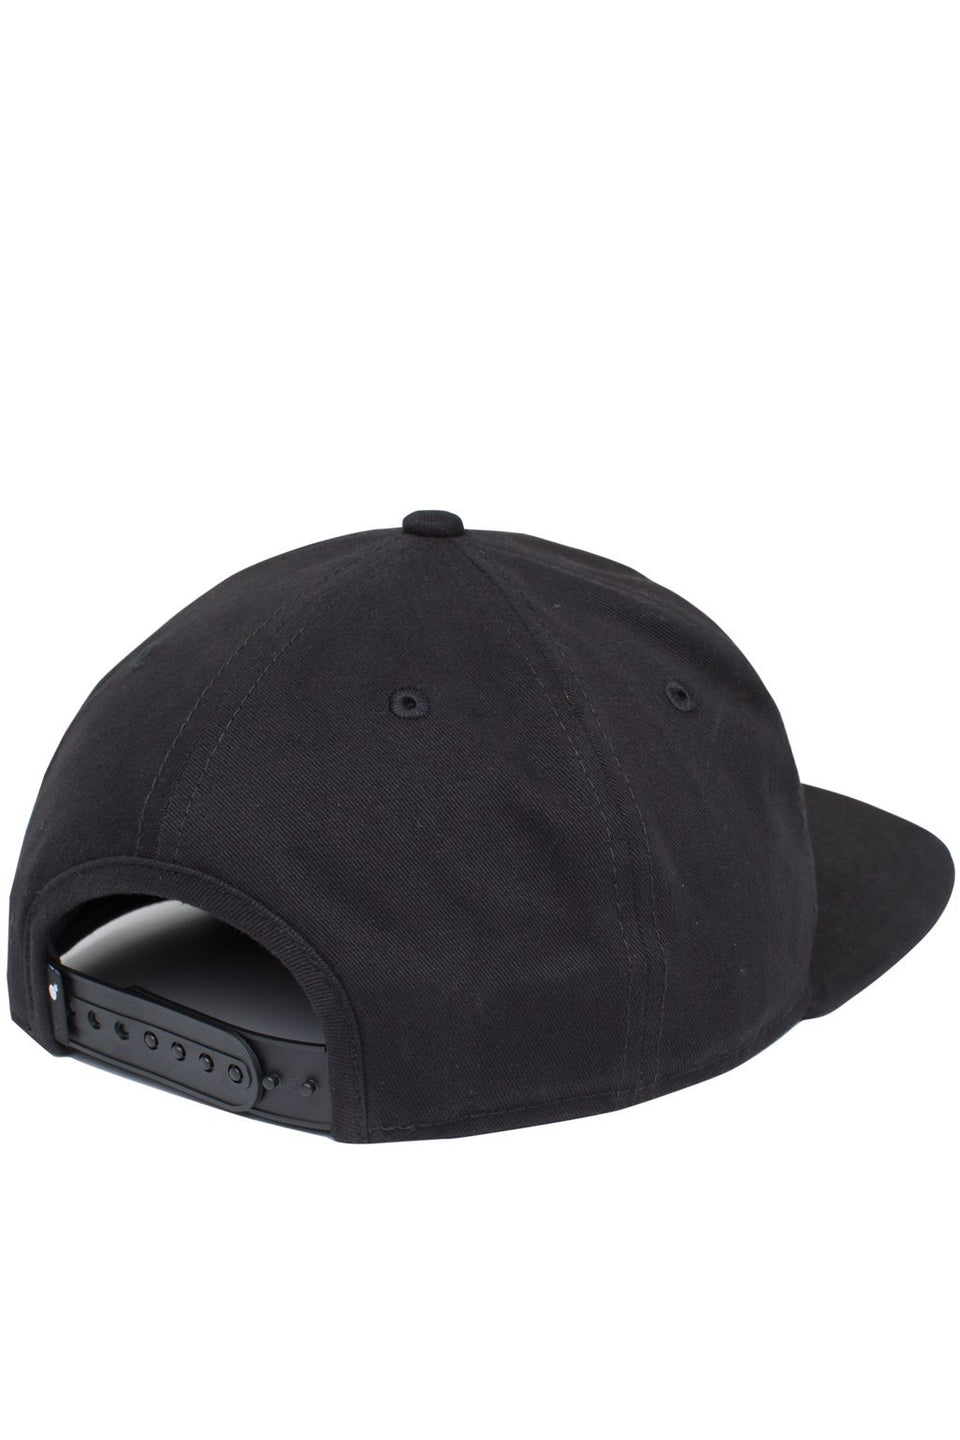 Mascot Snapback-HEADWEAR-The Hundreds UK